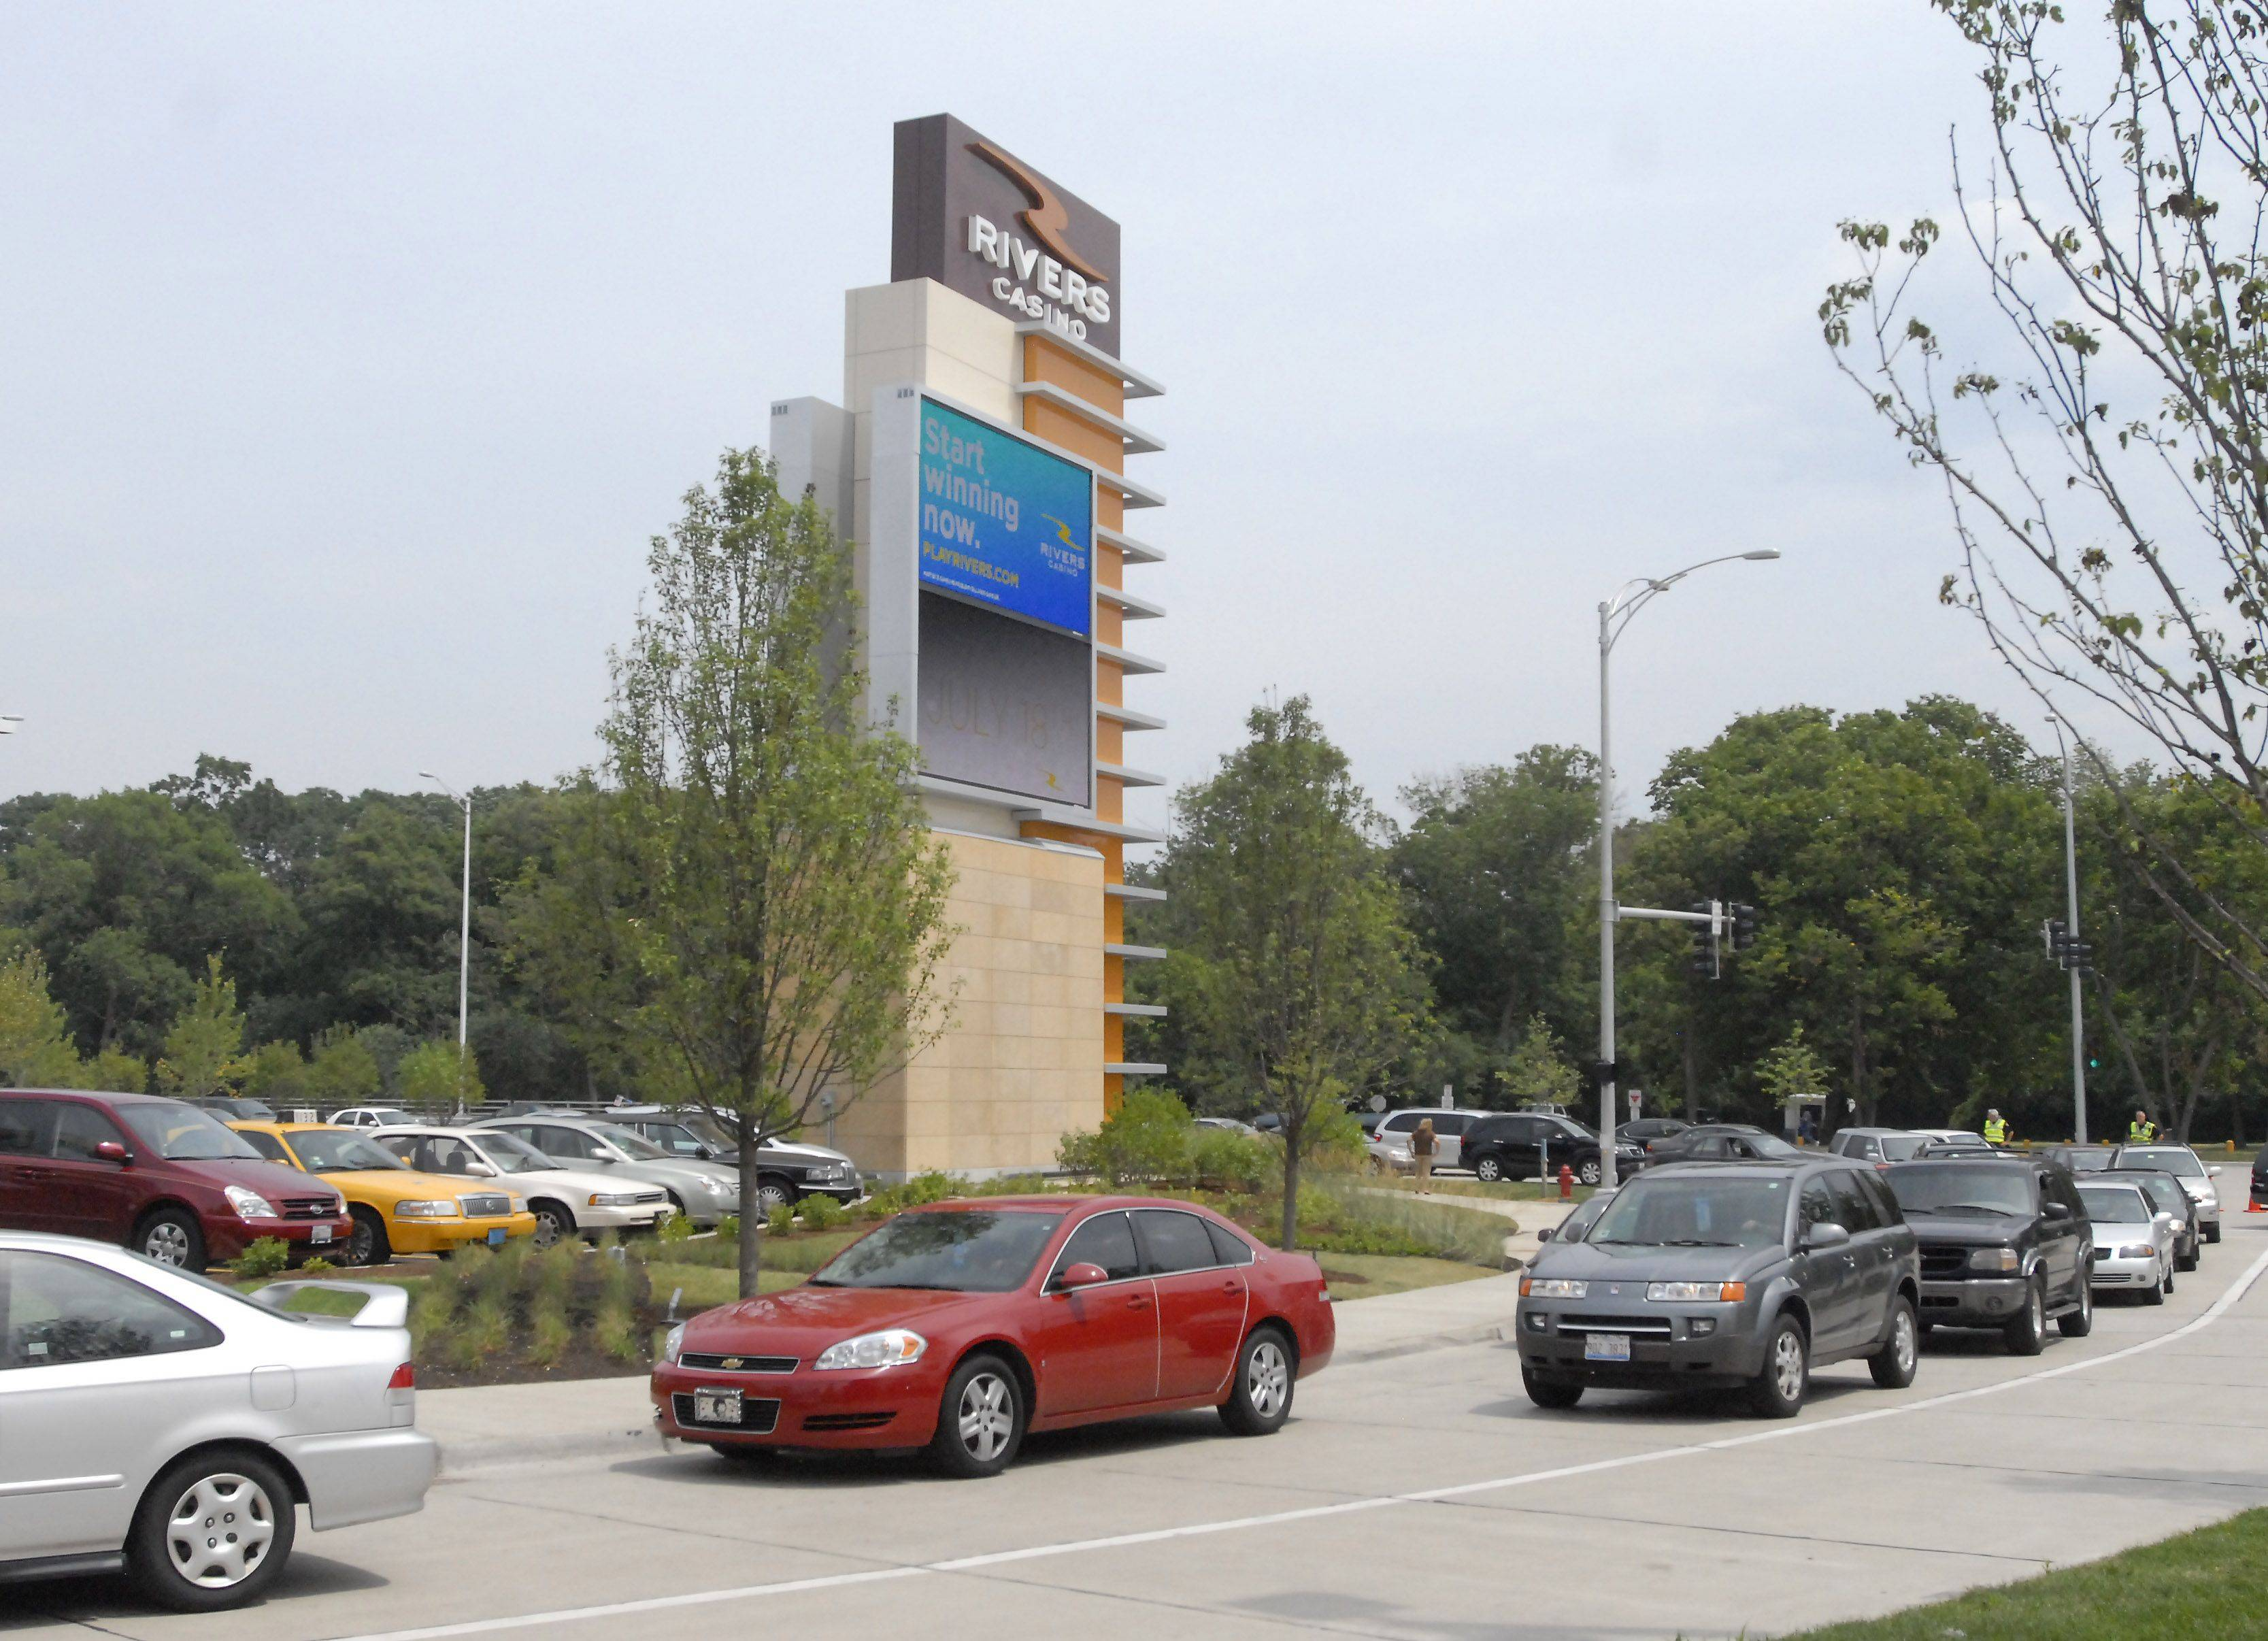 Des Plaines has 30 electronic message boards ranging in size from 6 square feet to this 923-square-foot board at the Rivers Casino off Des Plaines River Road and Devon Avenue.